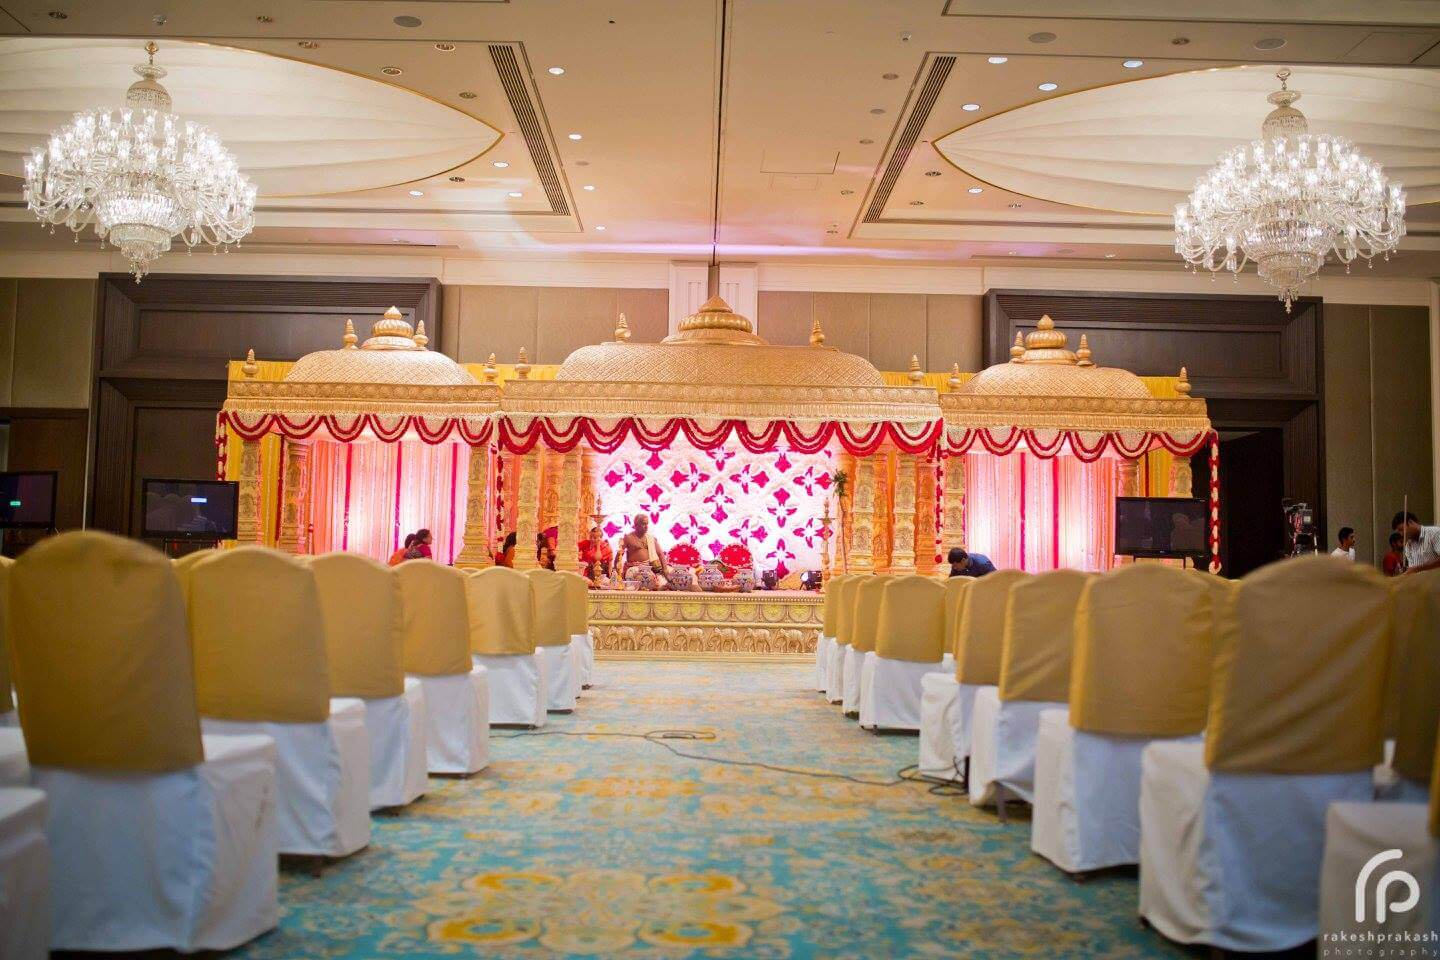 The best 10 wedding planners in chennai you should hire augrav the dream theme wedding planners chennai junglespirit Choice Image